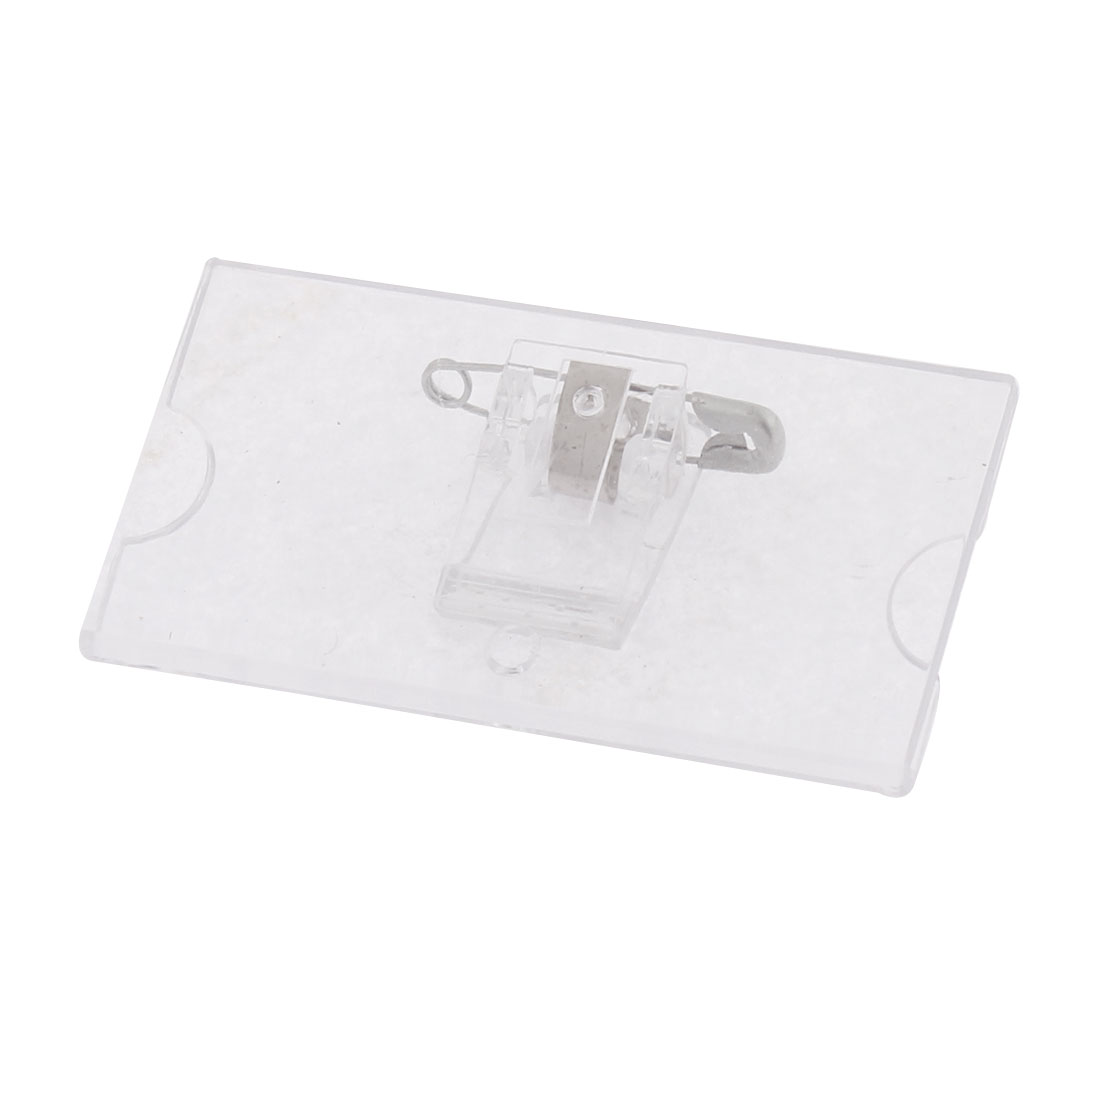 Clear Plastic Safetypin Name Tag Clip Badge Card Holder 4pcs